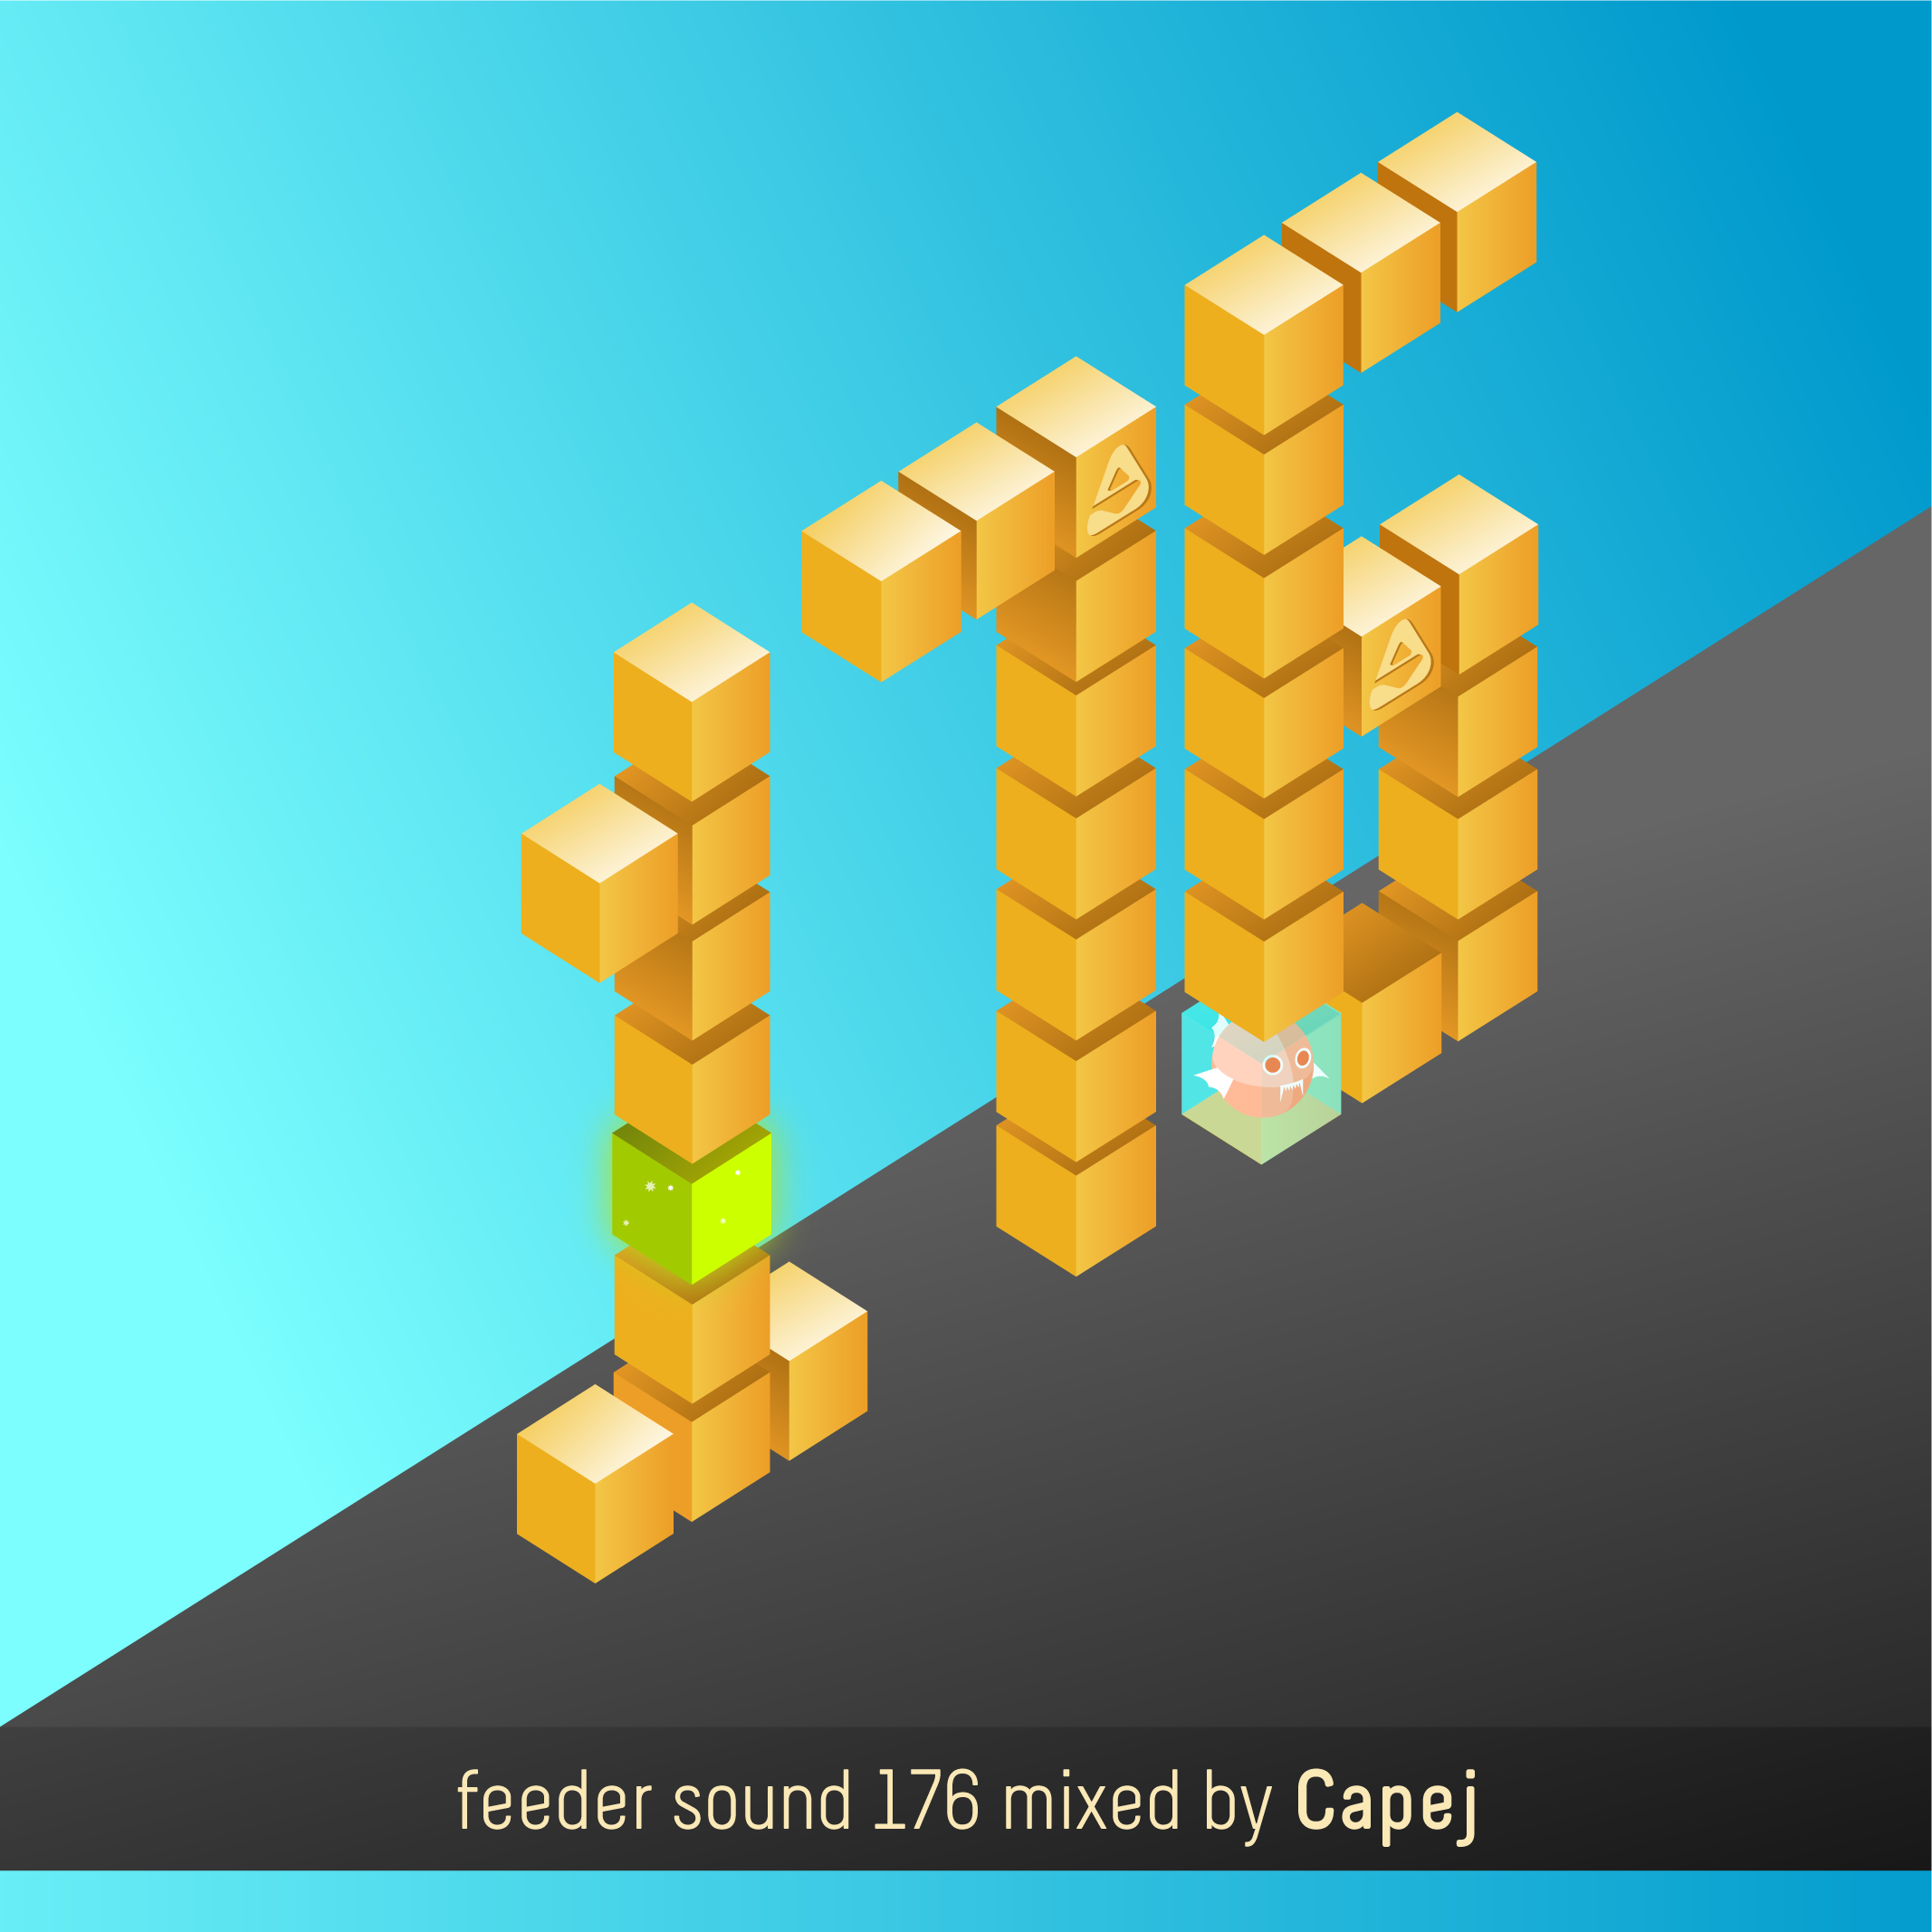 feeder sound 176 mixed by Capej